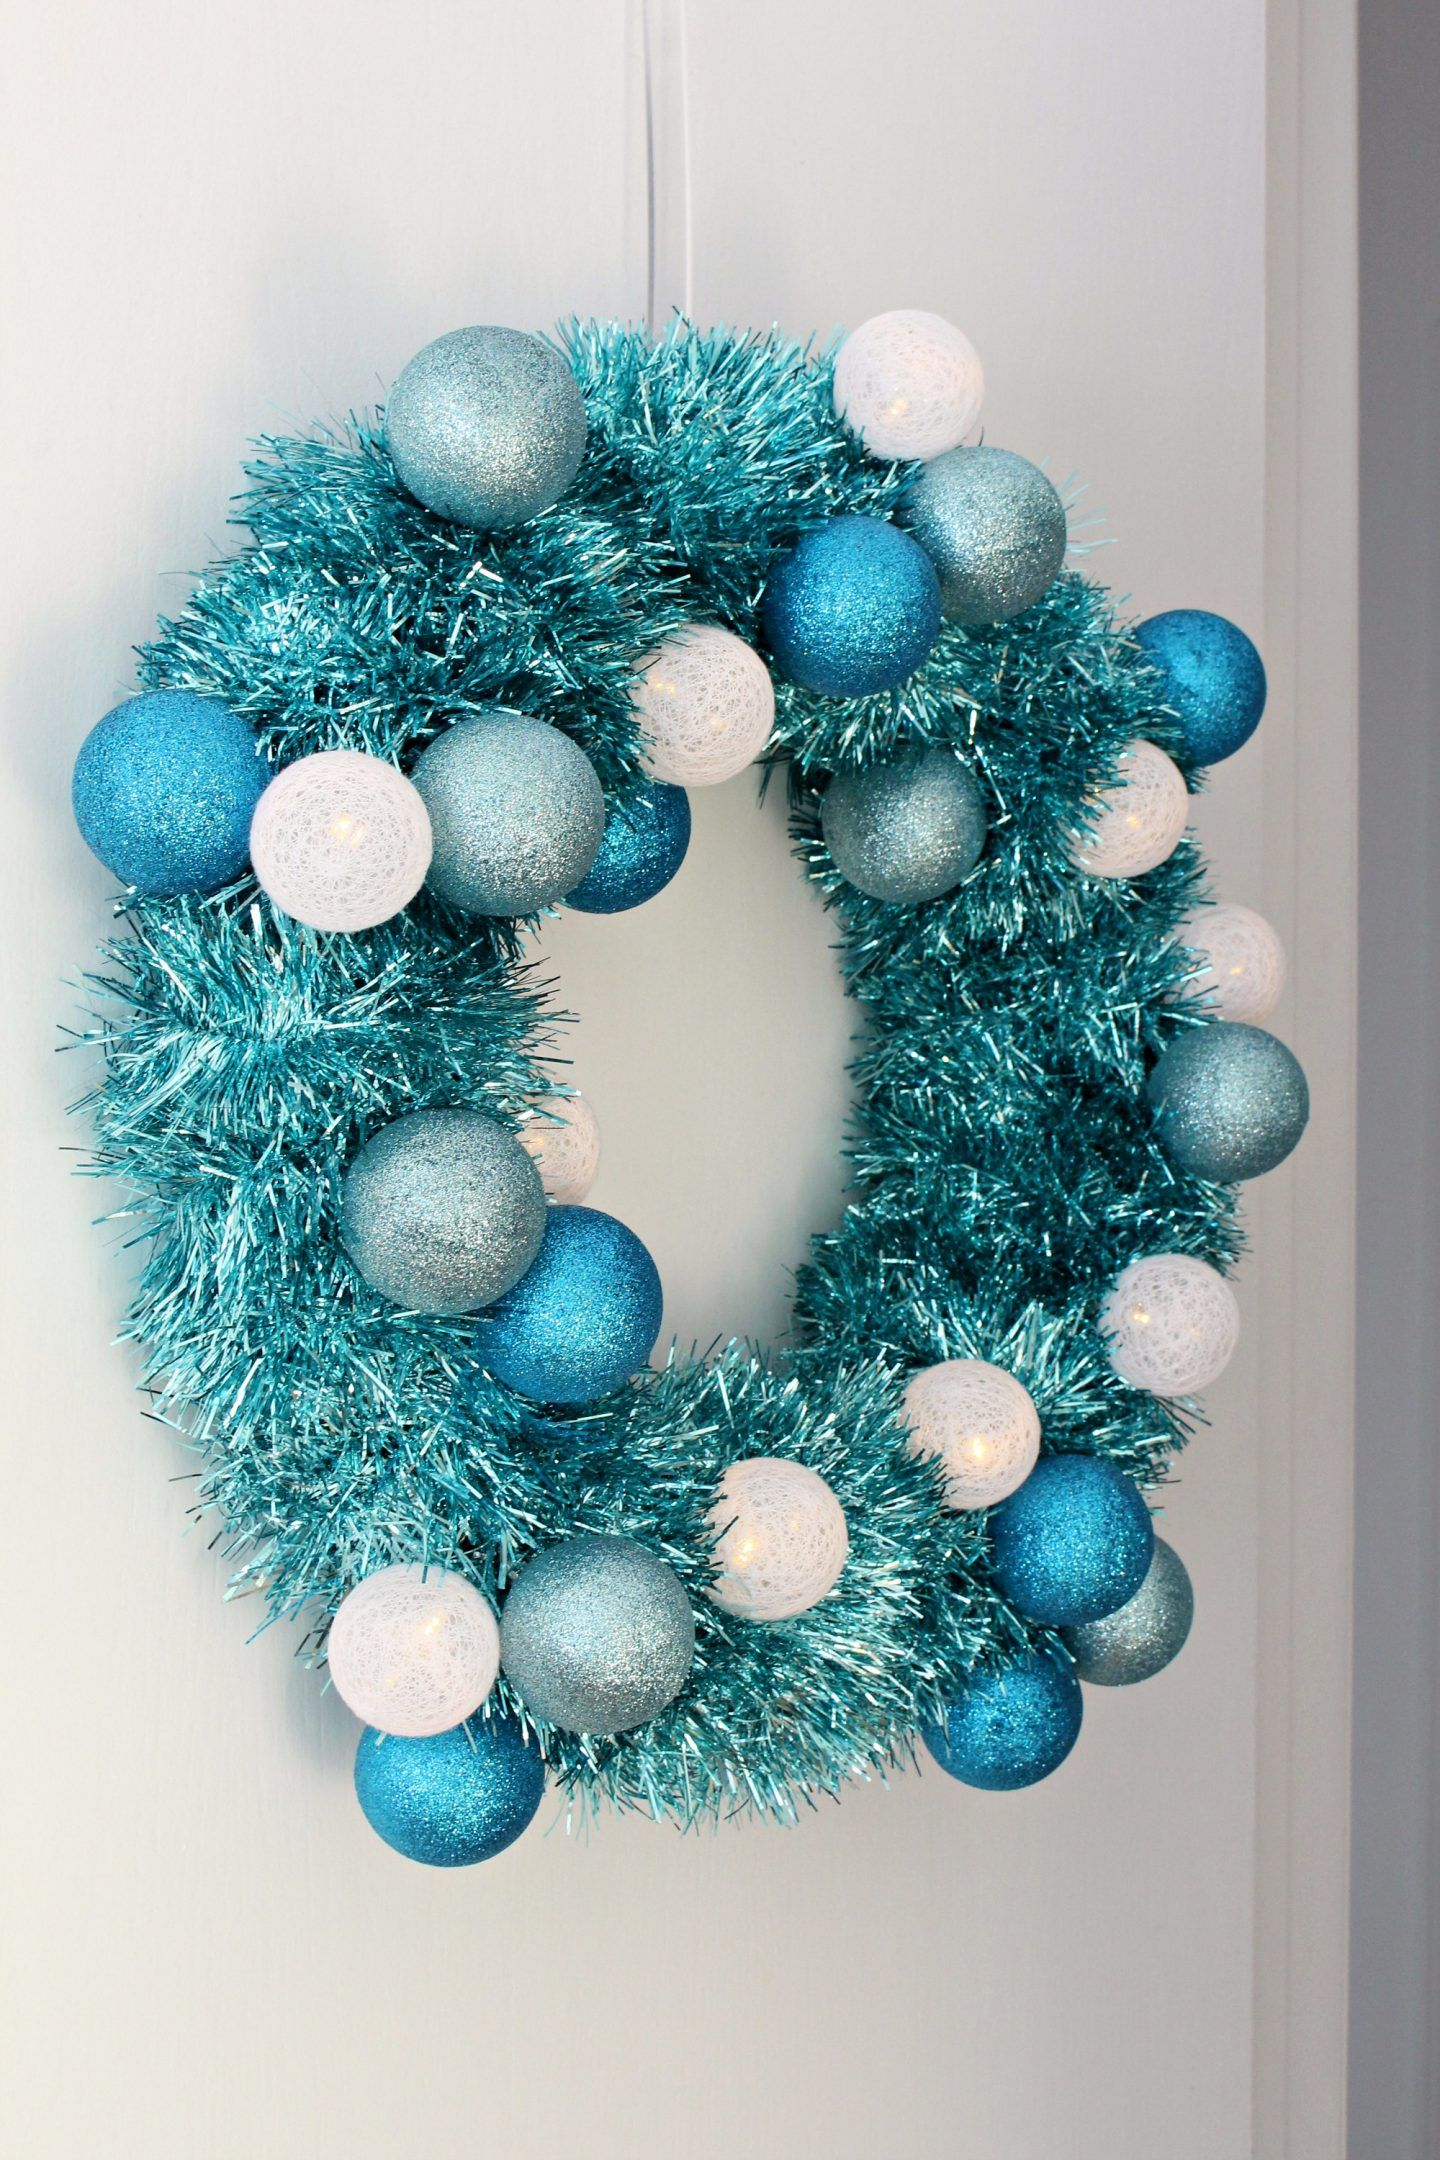 DIY Tinsel Wreath with Retro Vibes (With images) Tinsel